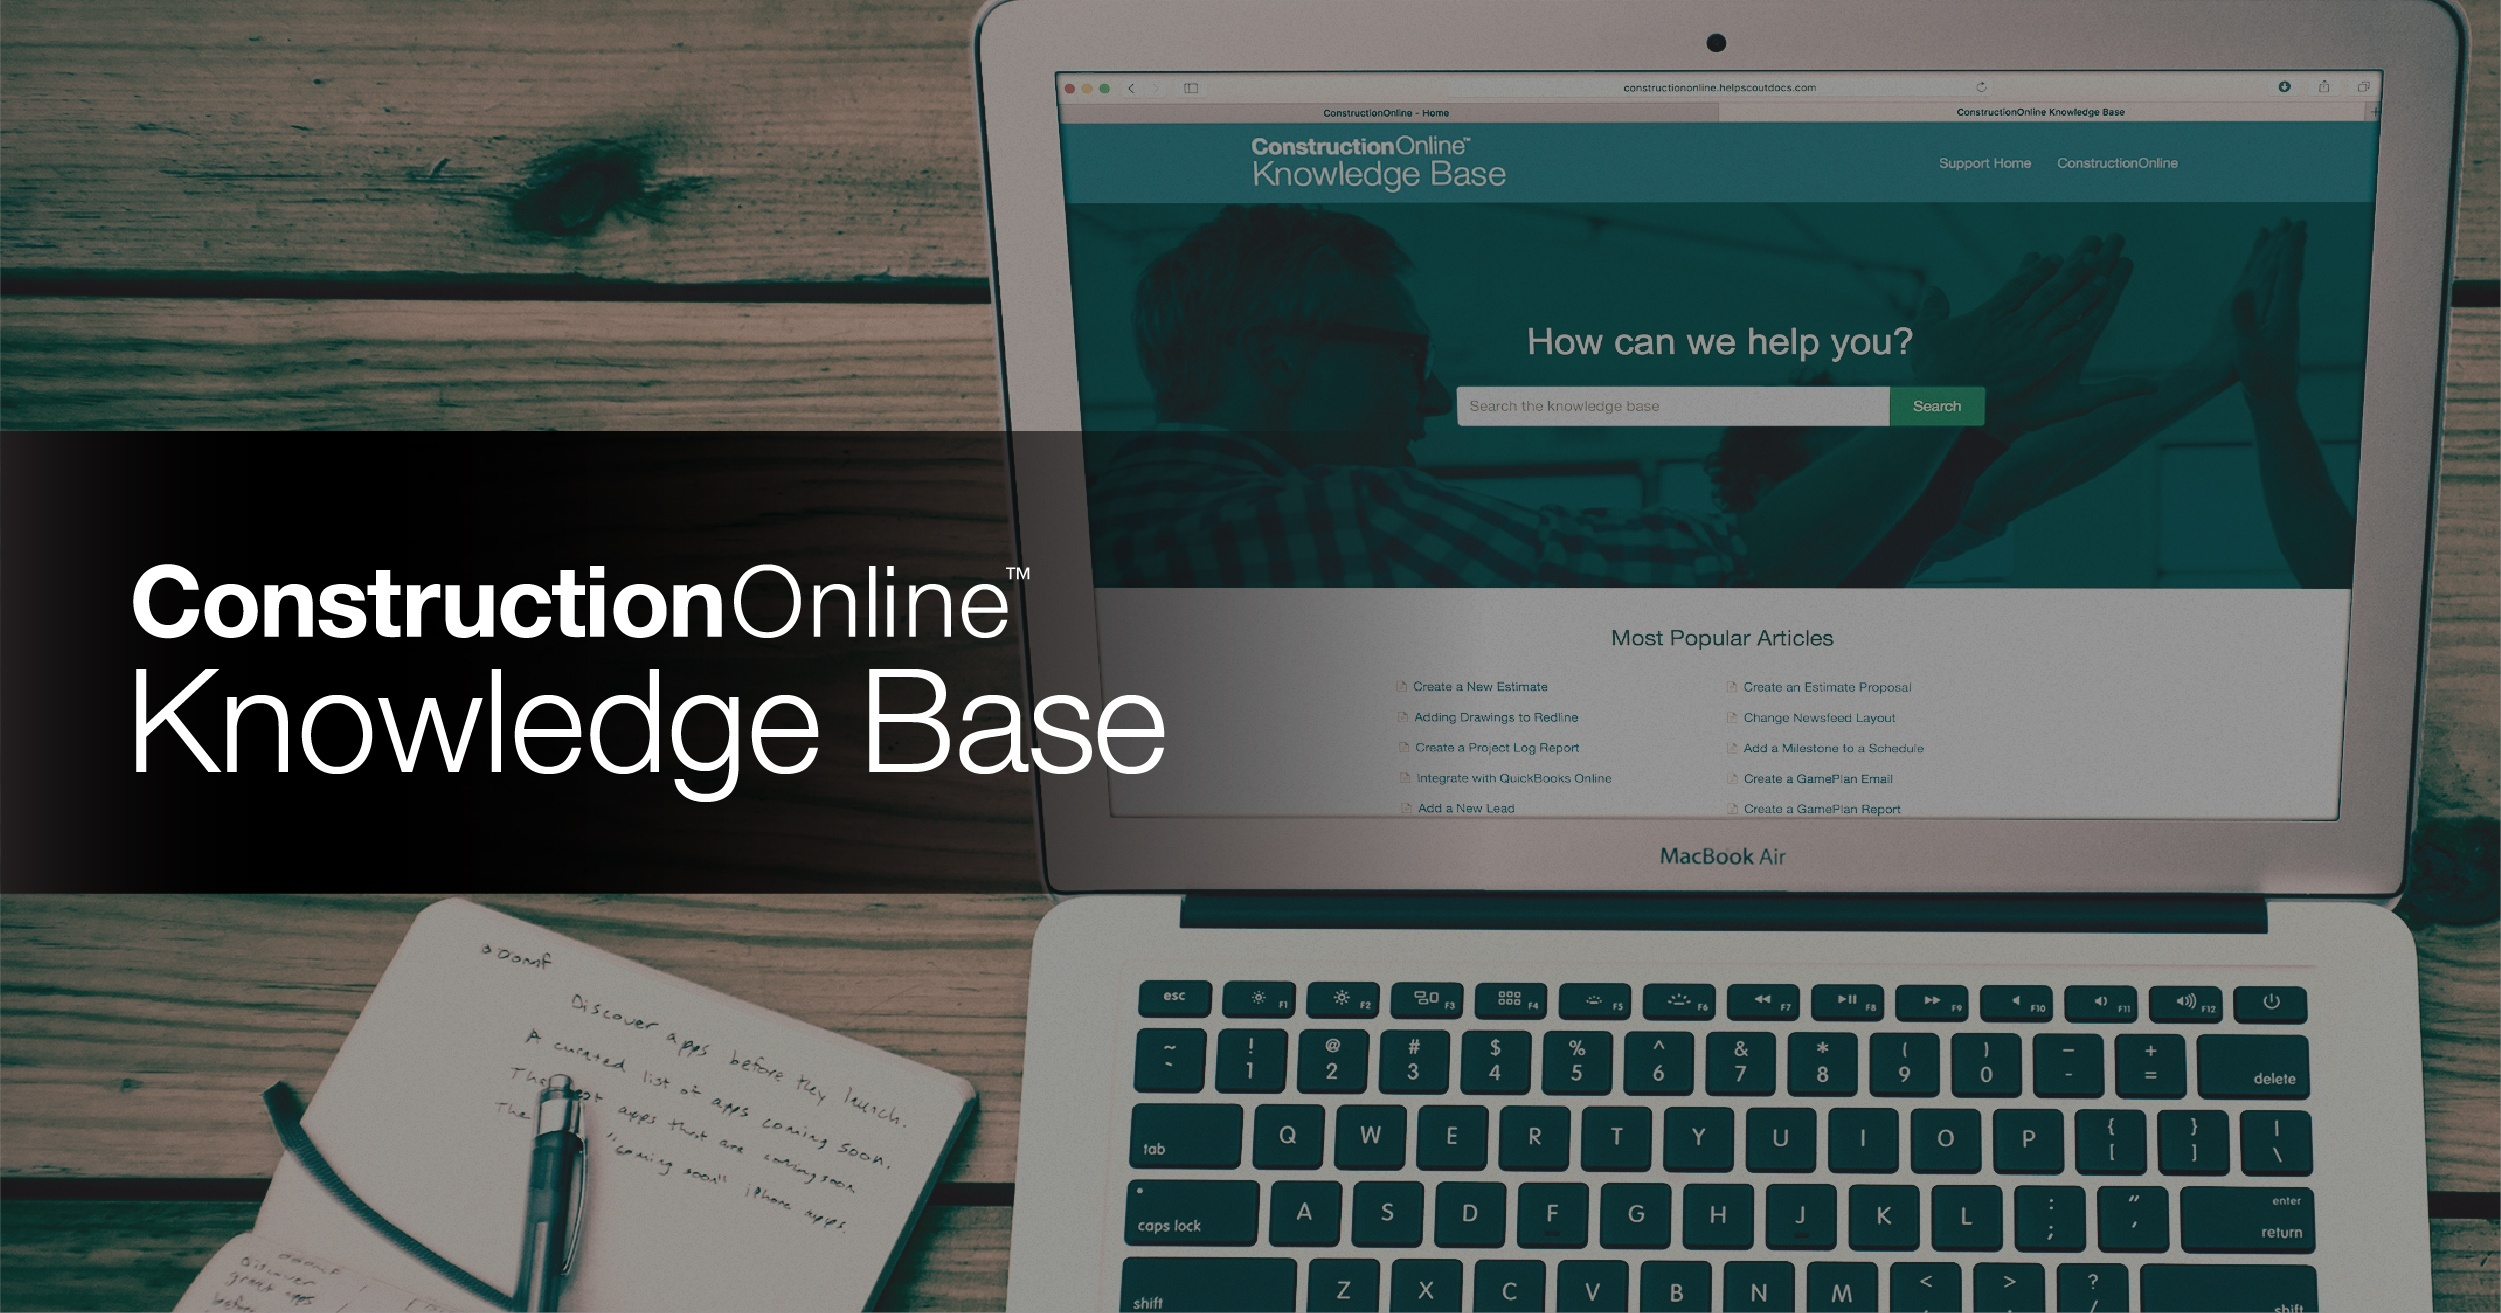 ConstructionOnline Enhances User Experience with Comprehensive Knowledge Base